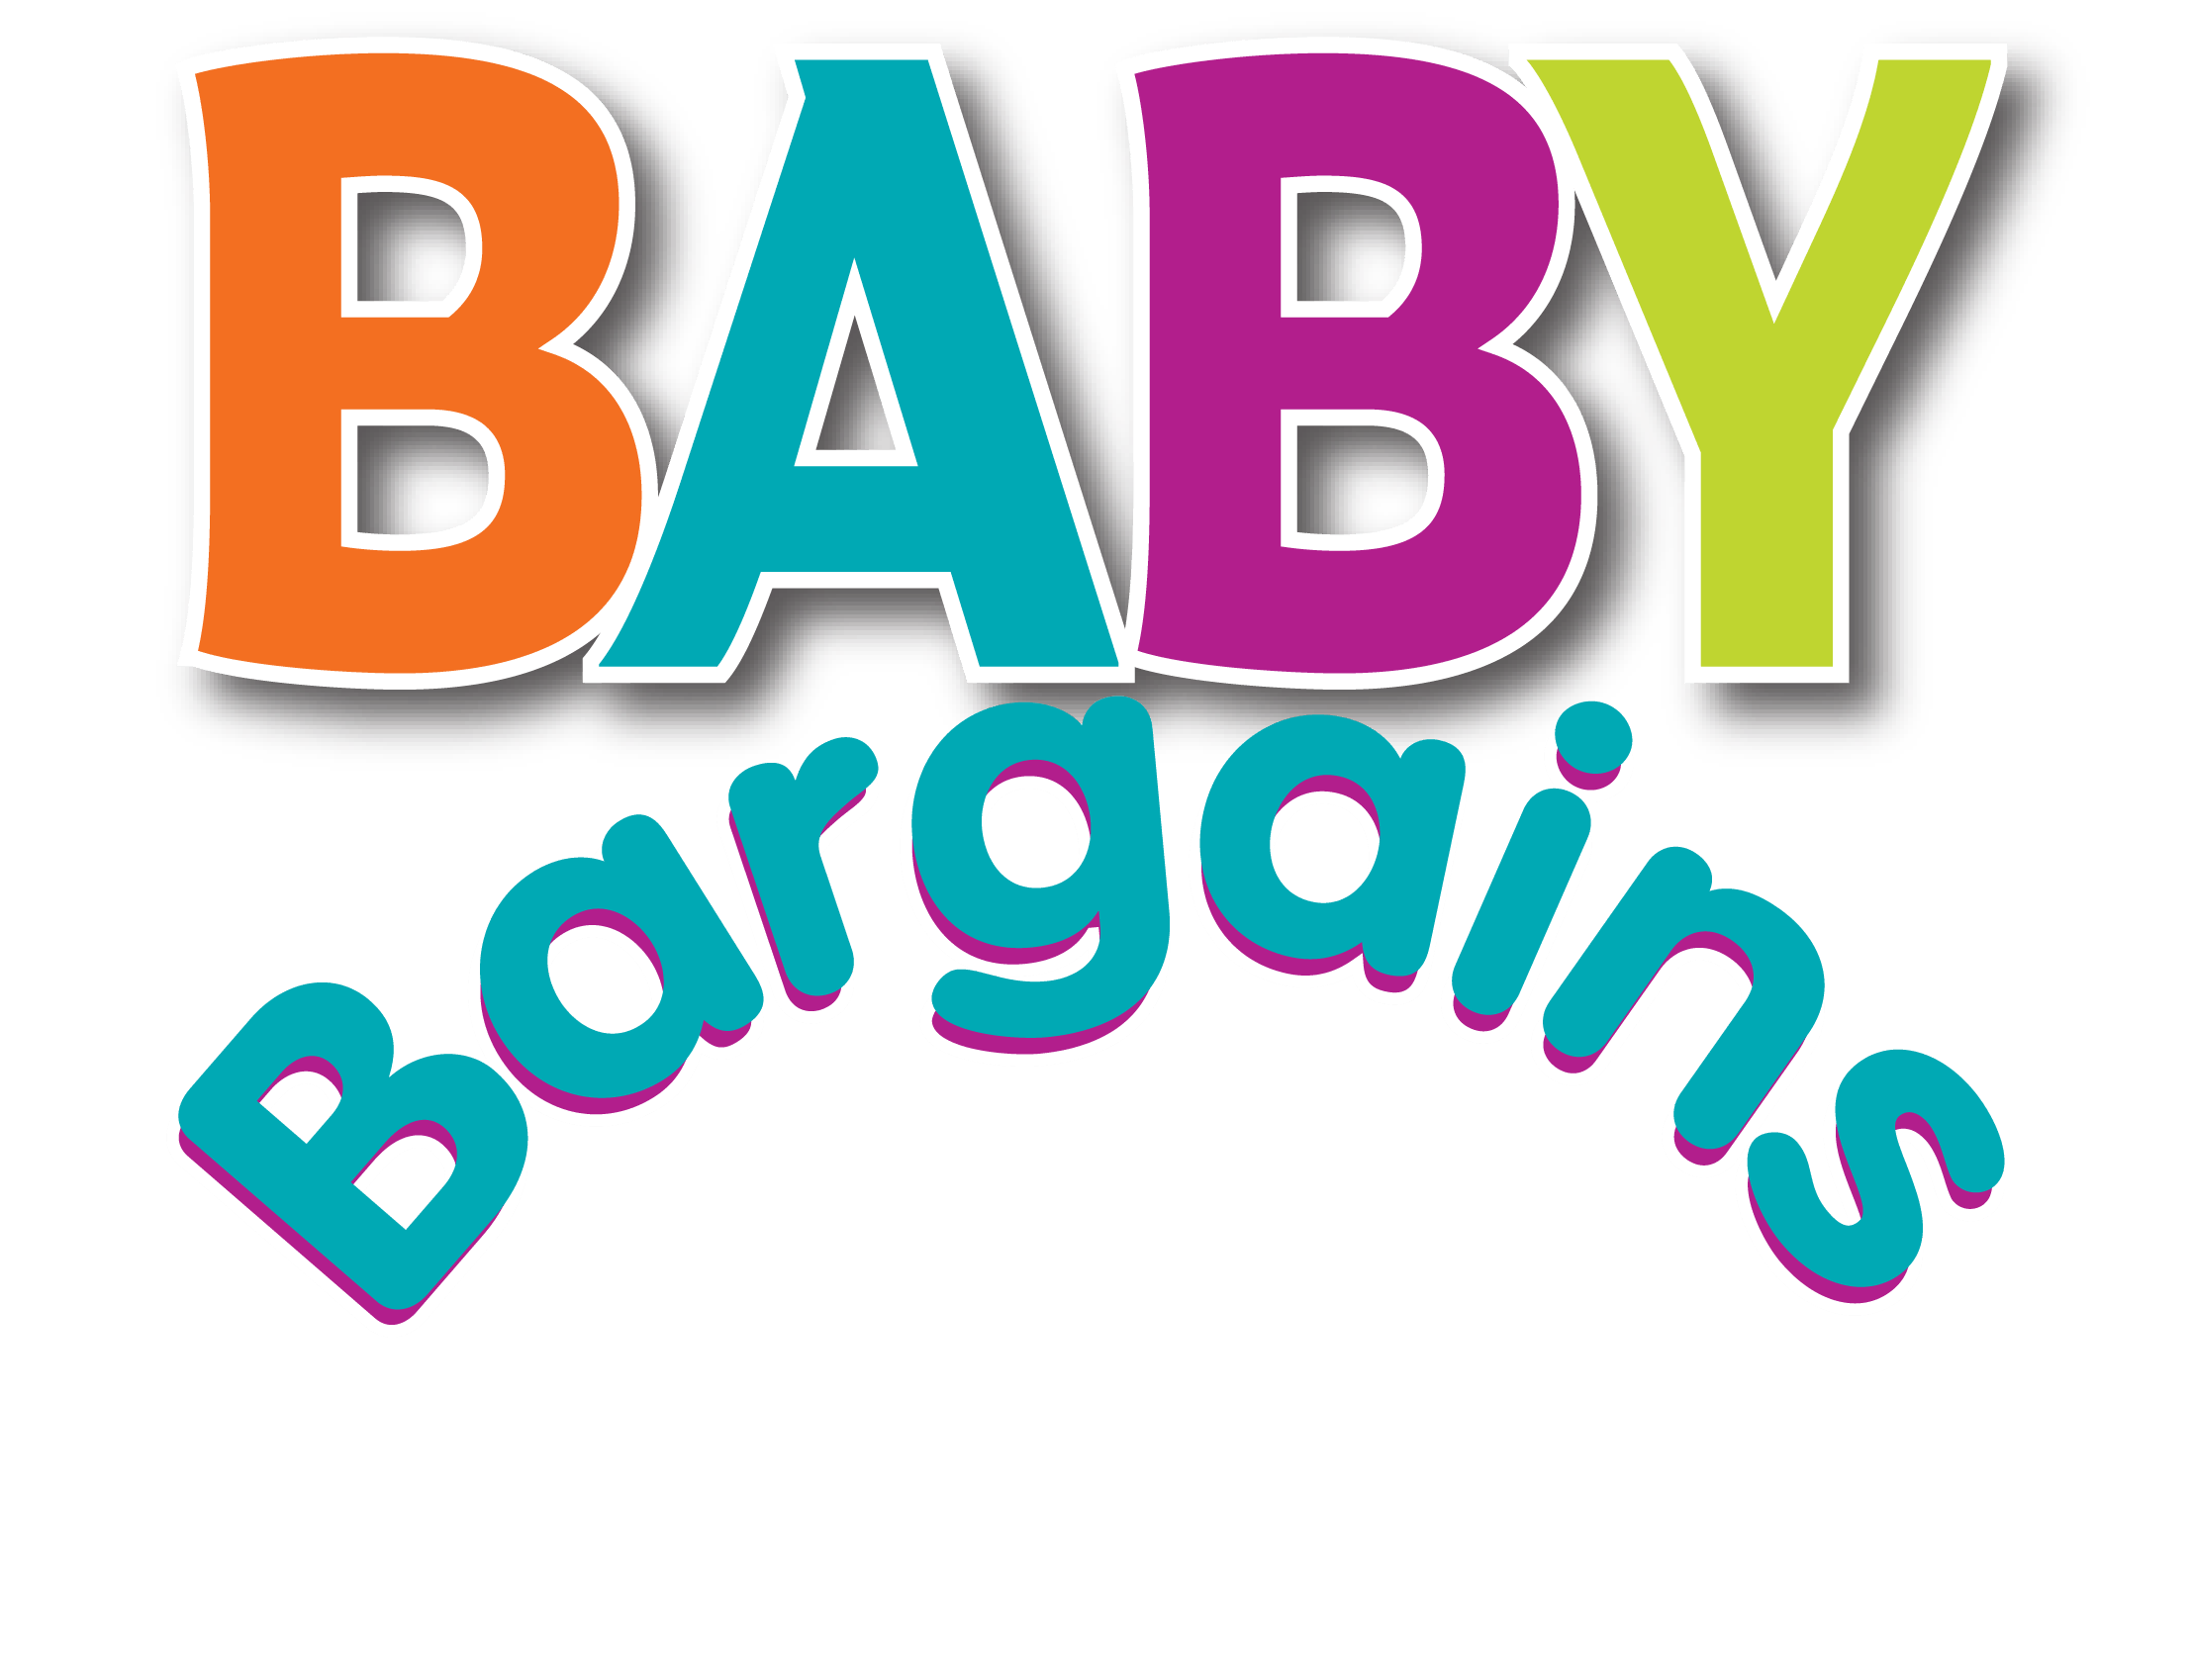 Crib for sale in cebu - Baby Bargains Crib Mattress Baby Bargains Crib Mattress 4